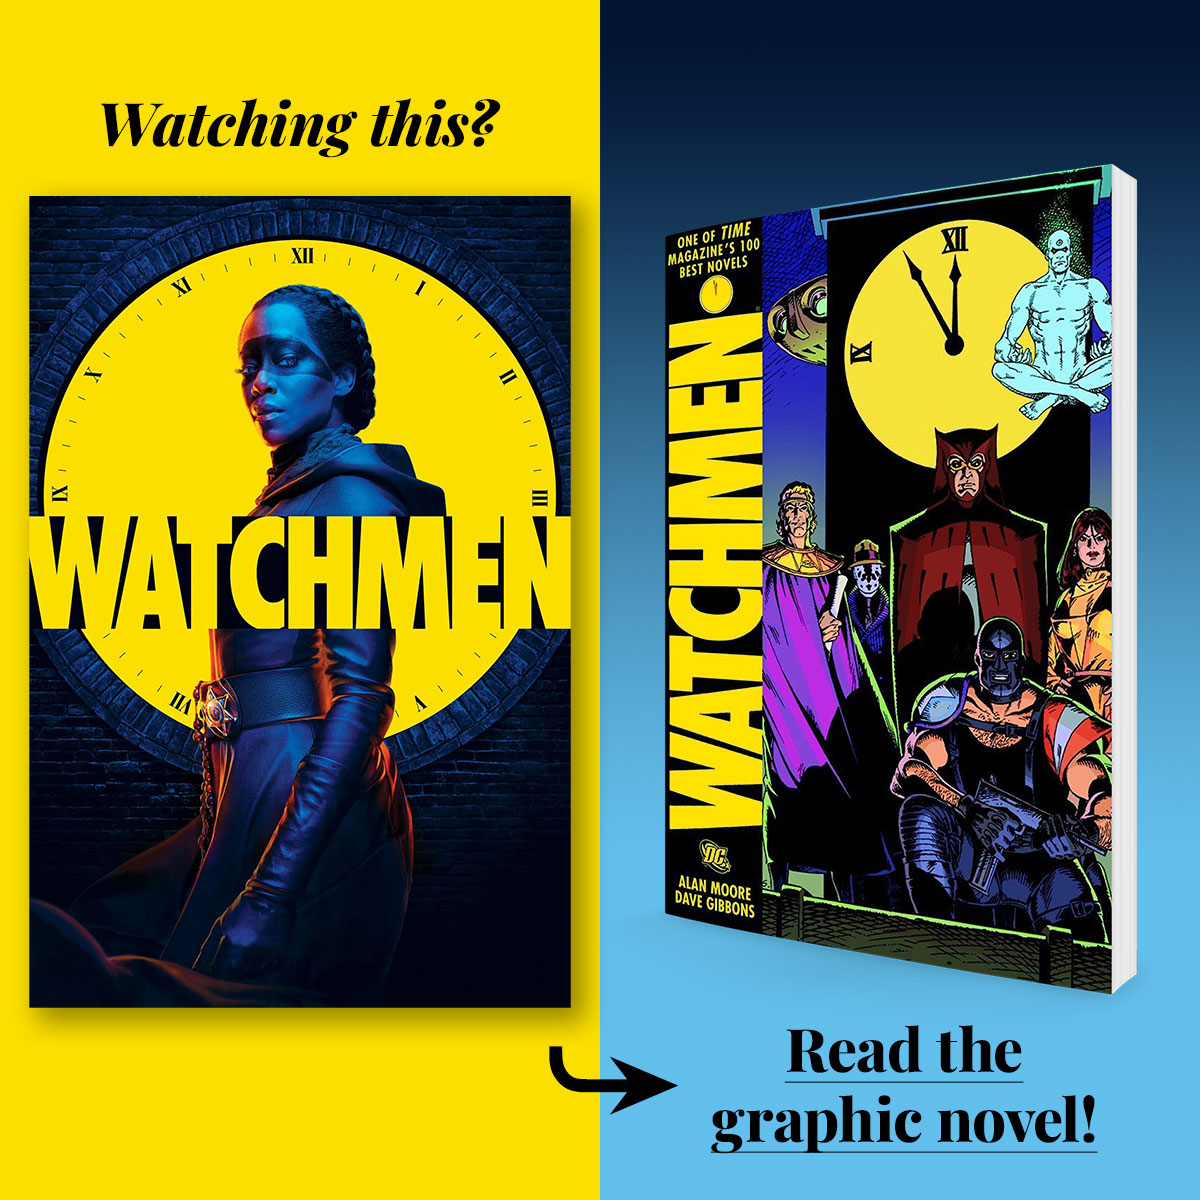 Watchmen by Alan Moore and Dave Gibbons • Adaptation streaming on HBO